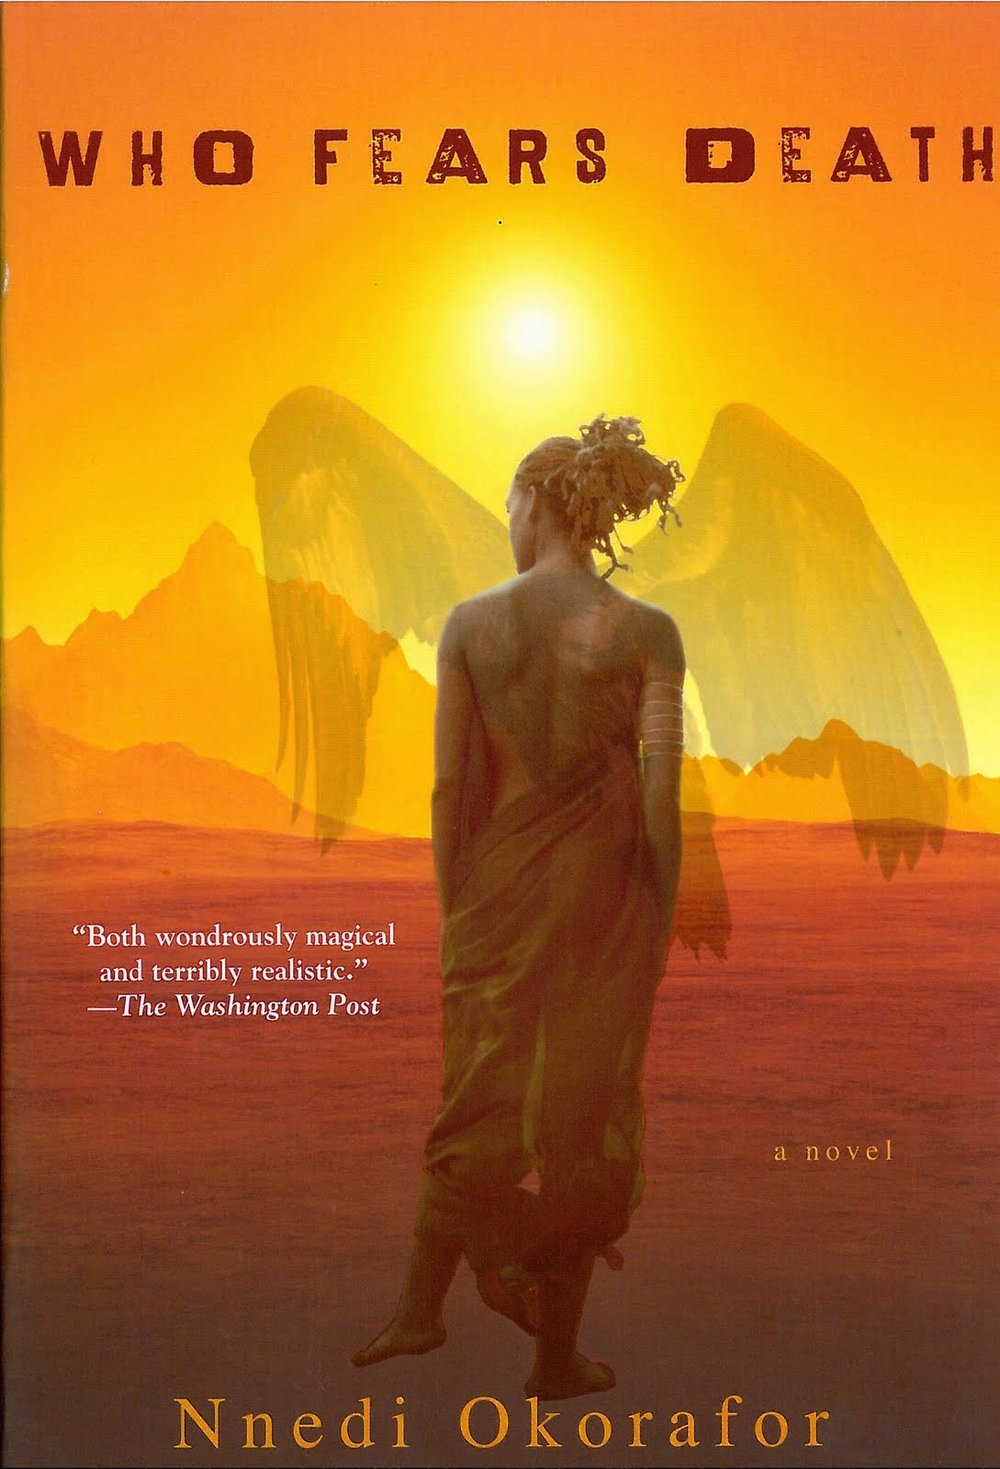 Who Fears Death, by Nnedi Okorafor